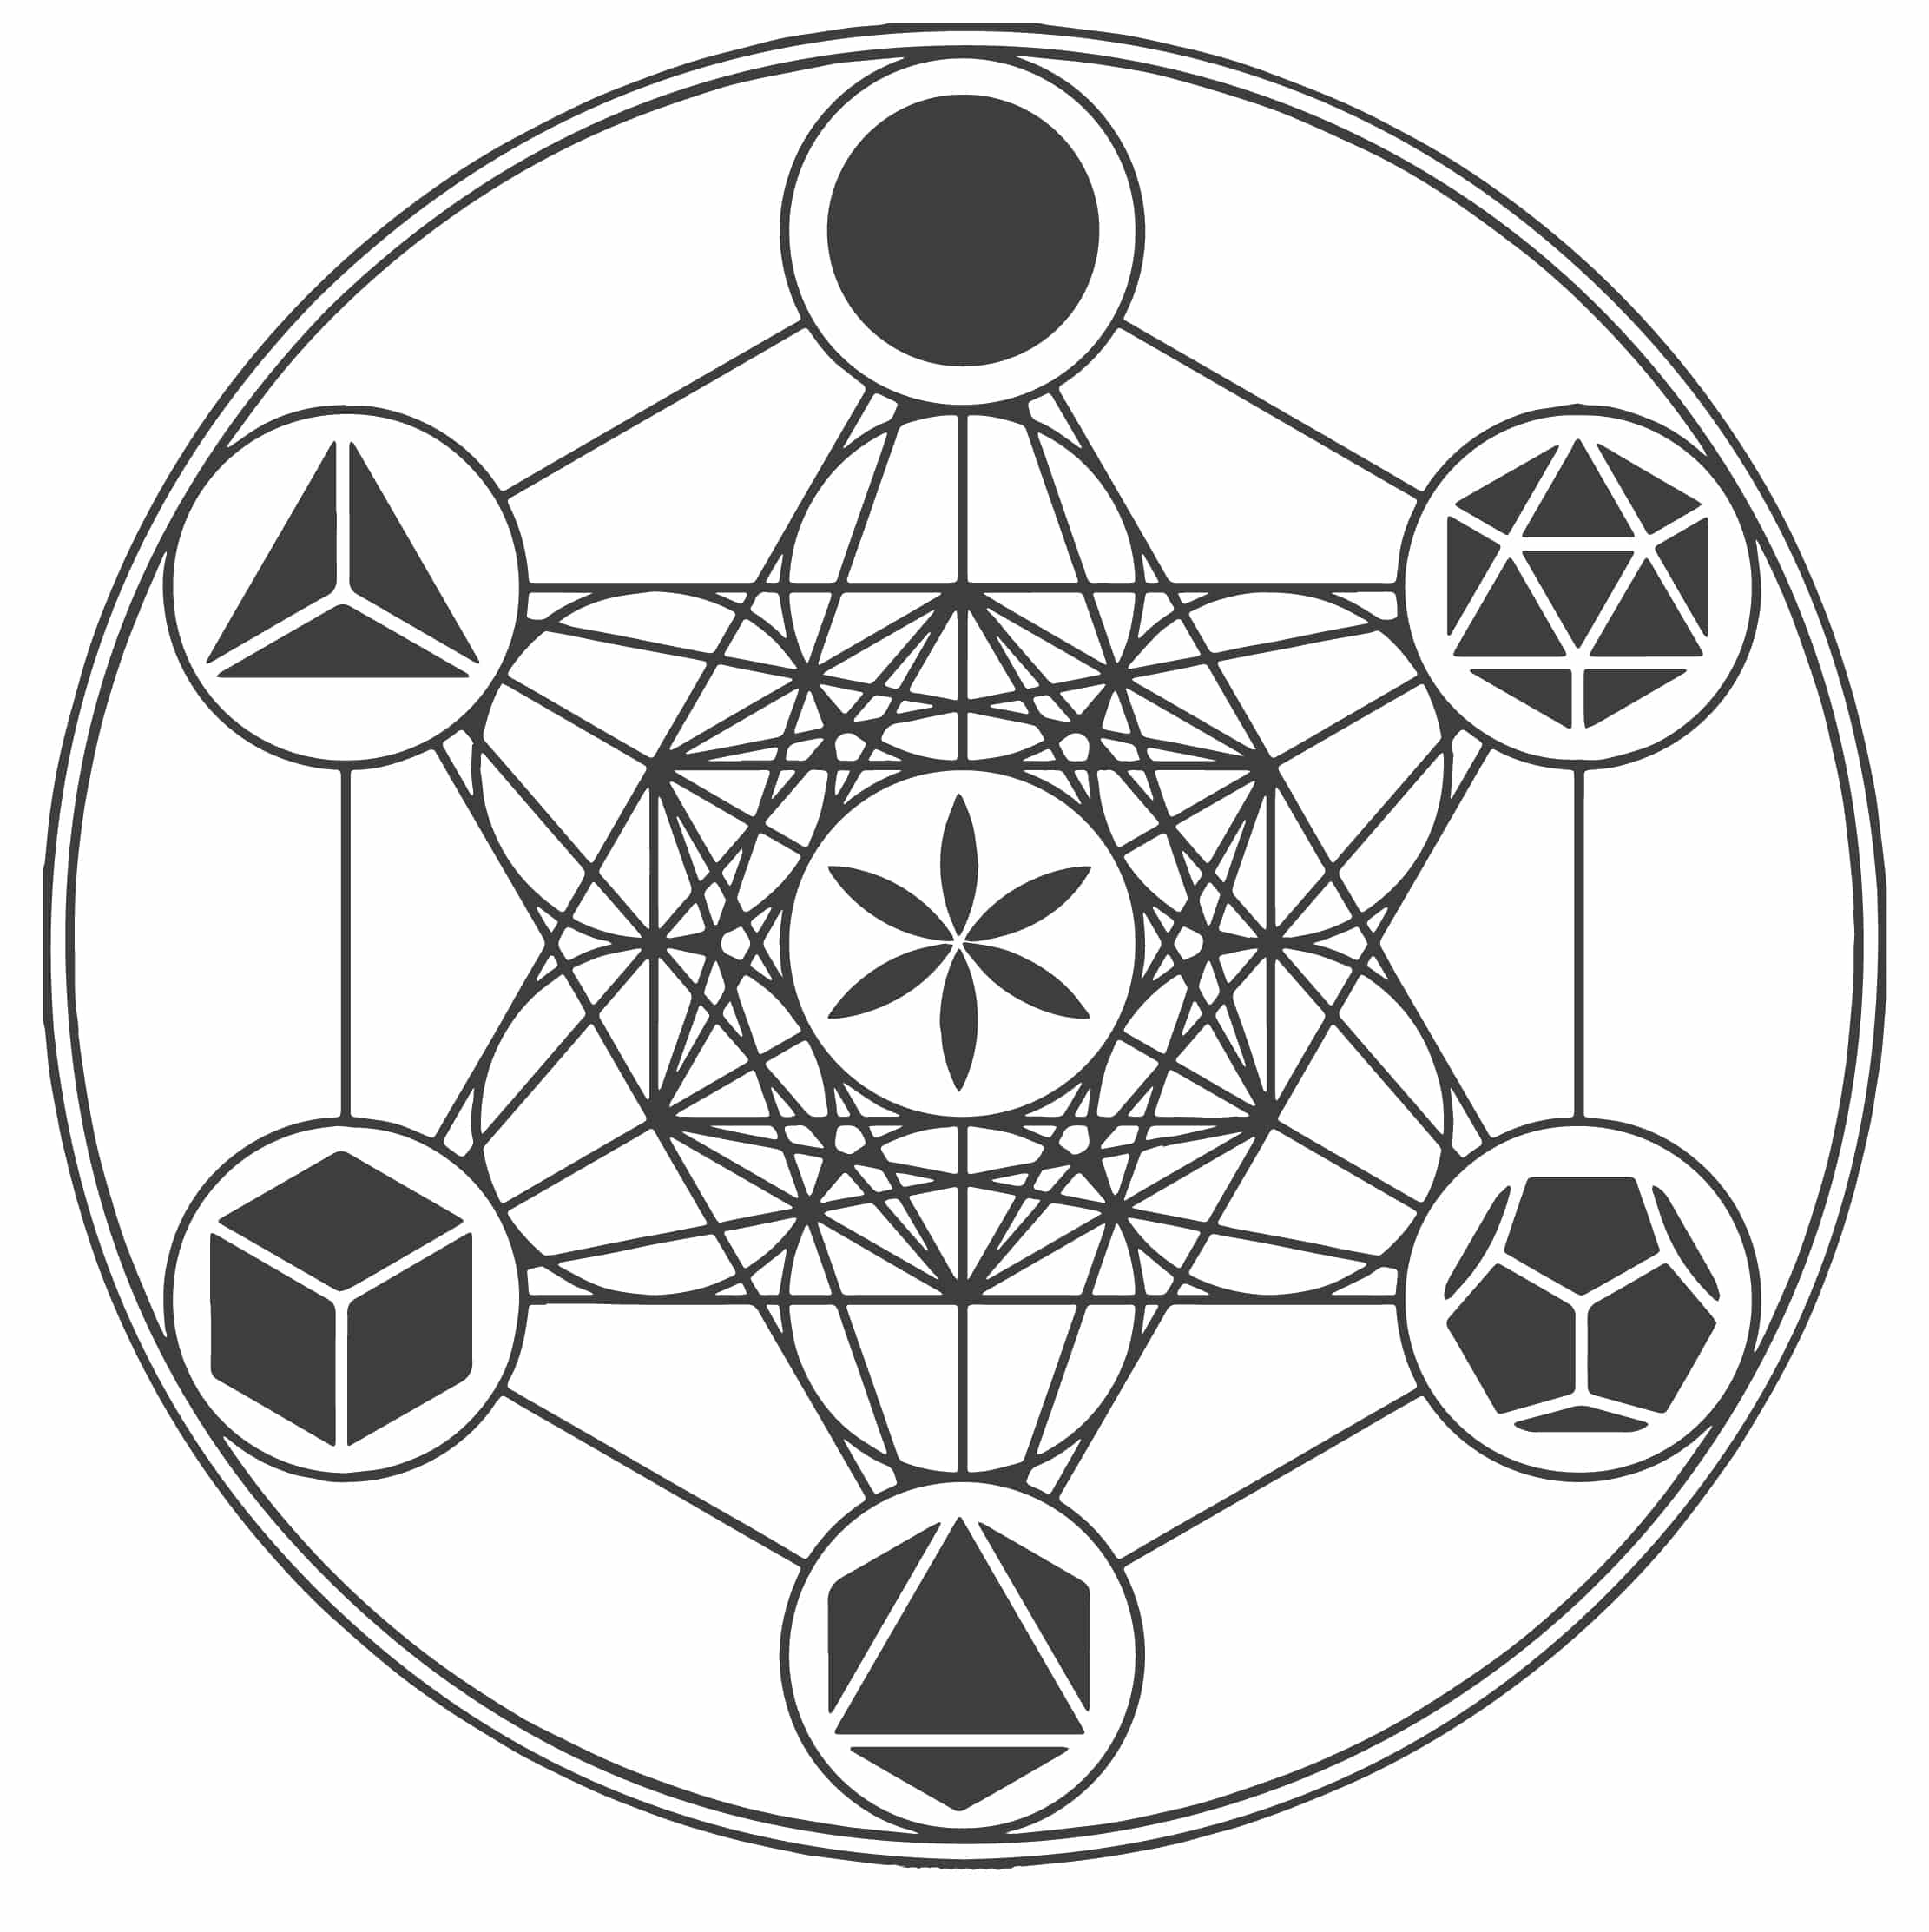 Metatrons Cube Symbol Its Origins And Meaning Mythologian